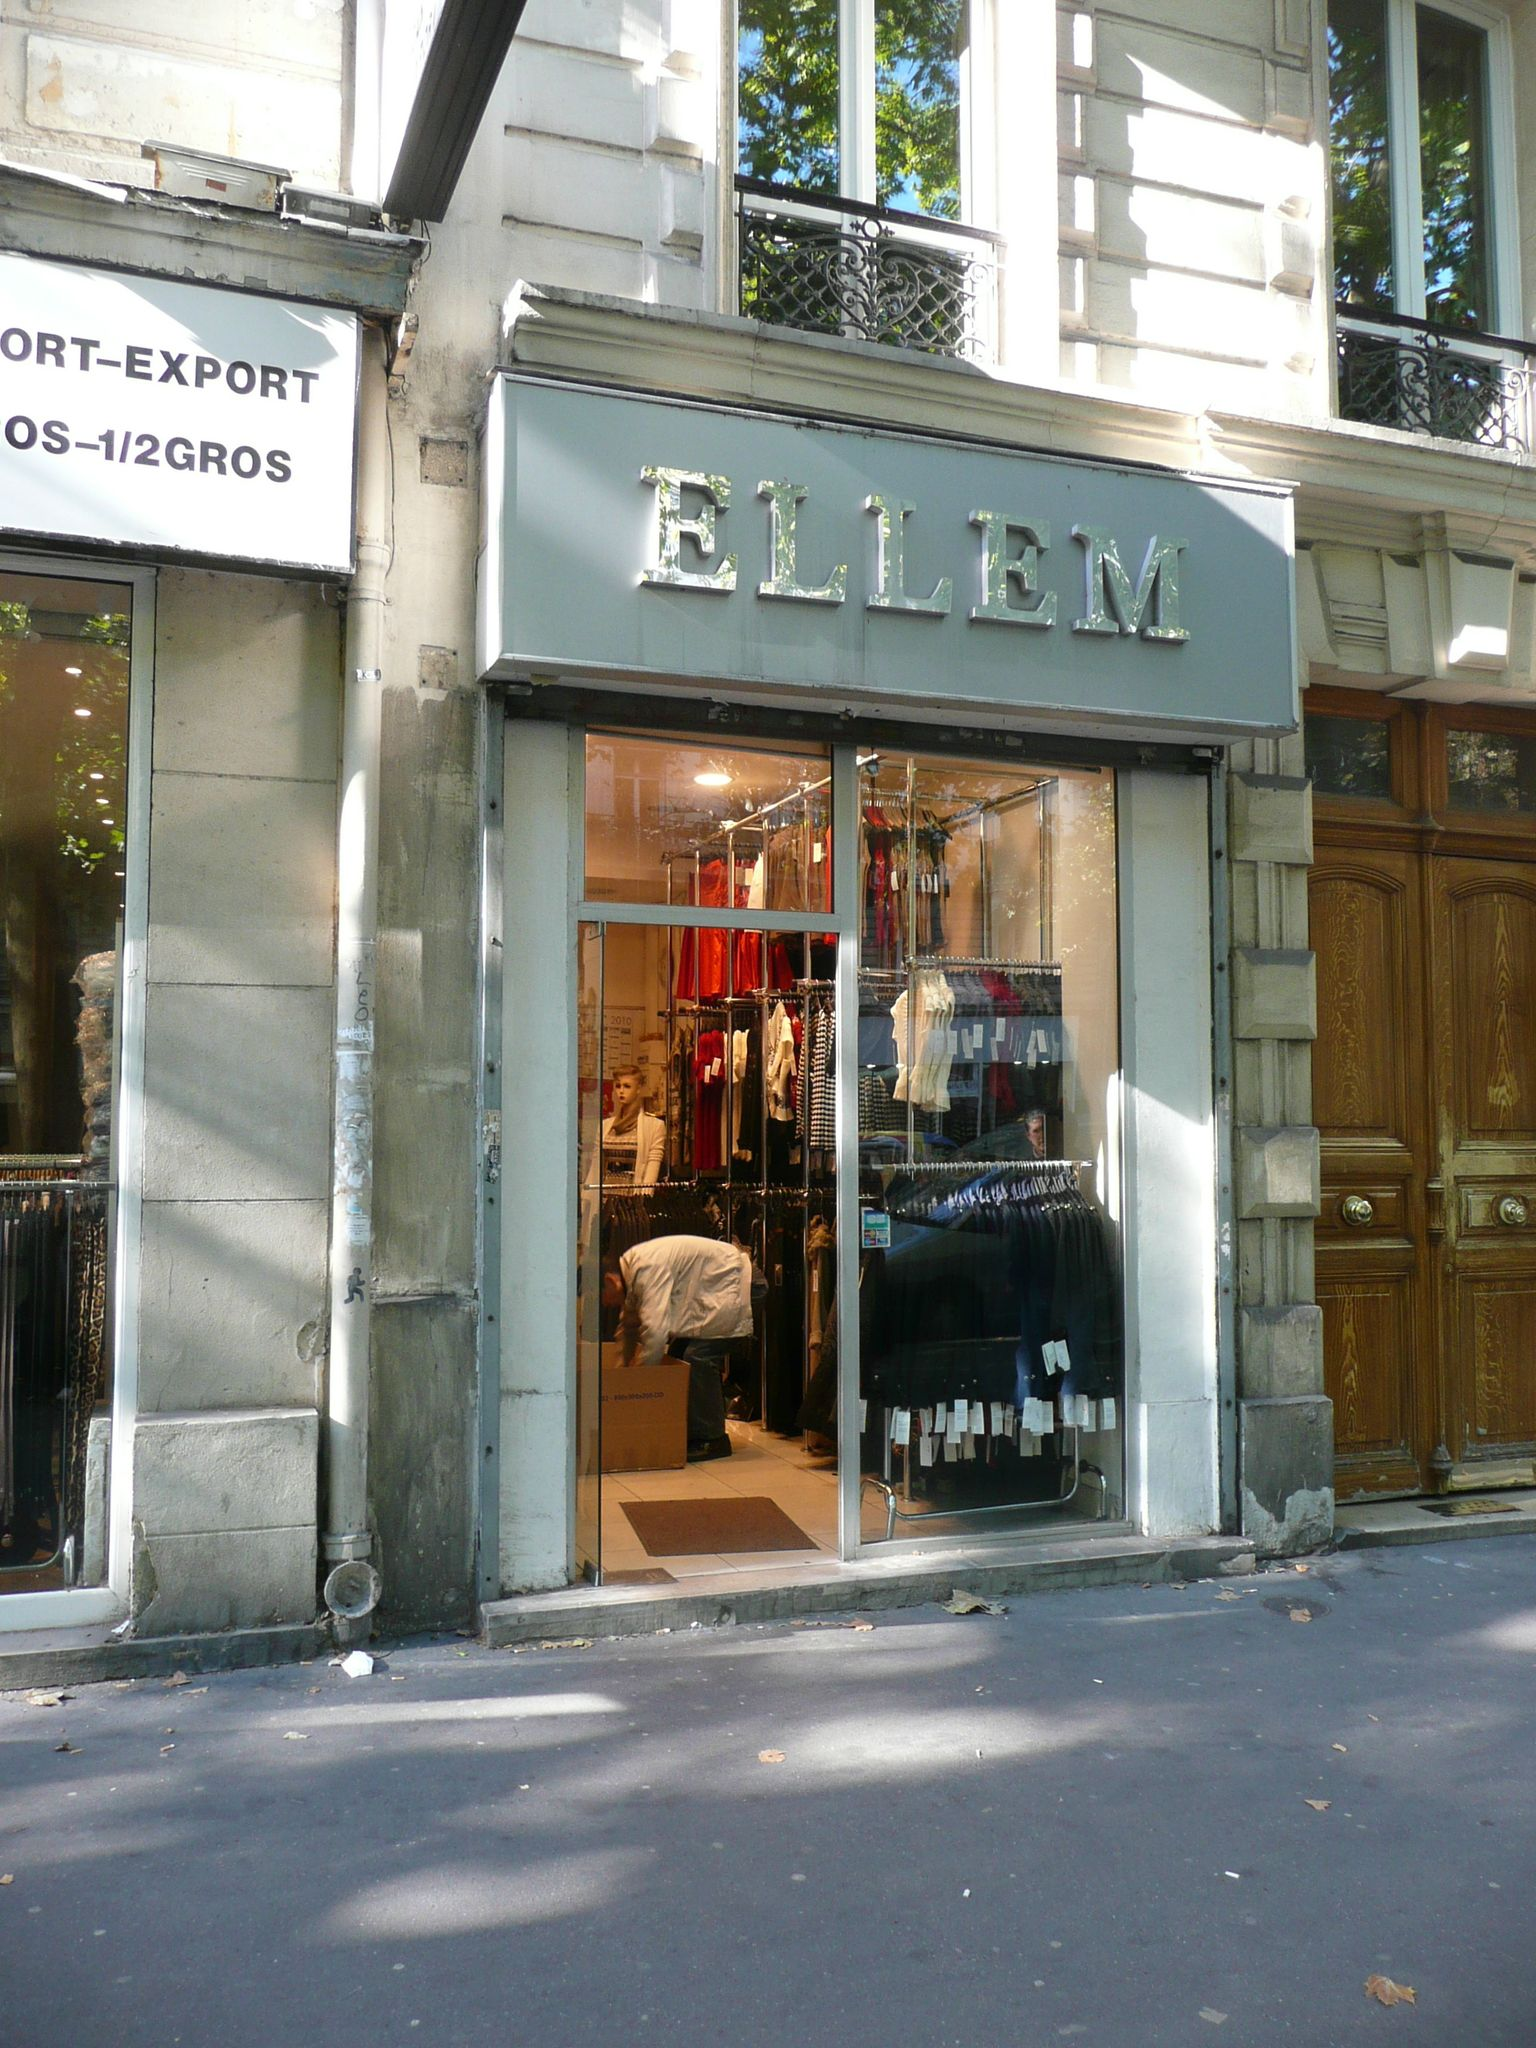 ellem paris 11 habillement jeu de mot photo vitrine humour magasin amour devanture bulent. Black Bedroom Furniture Sets. Home Design Ideas